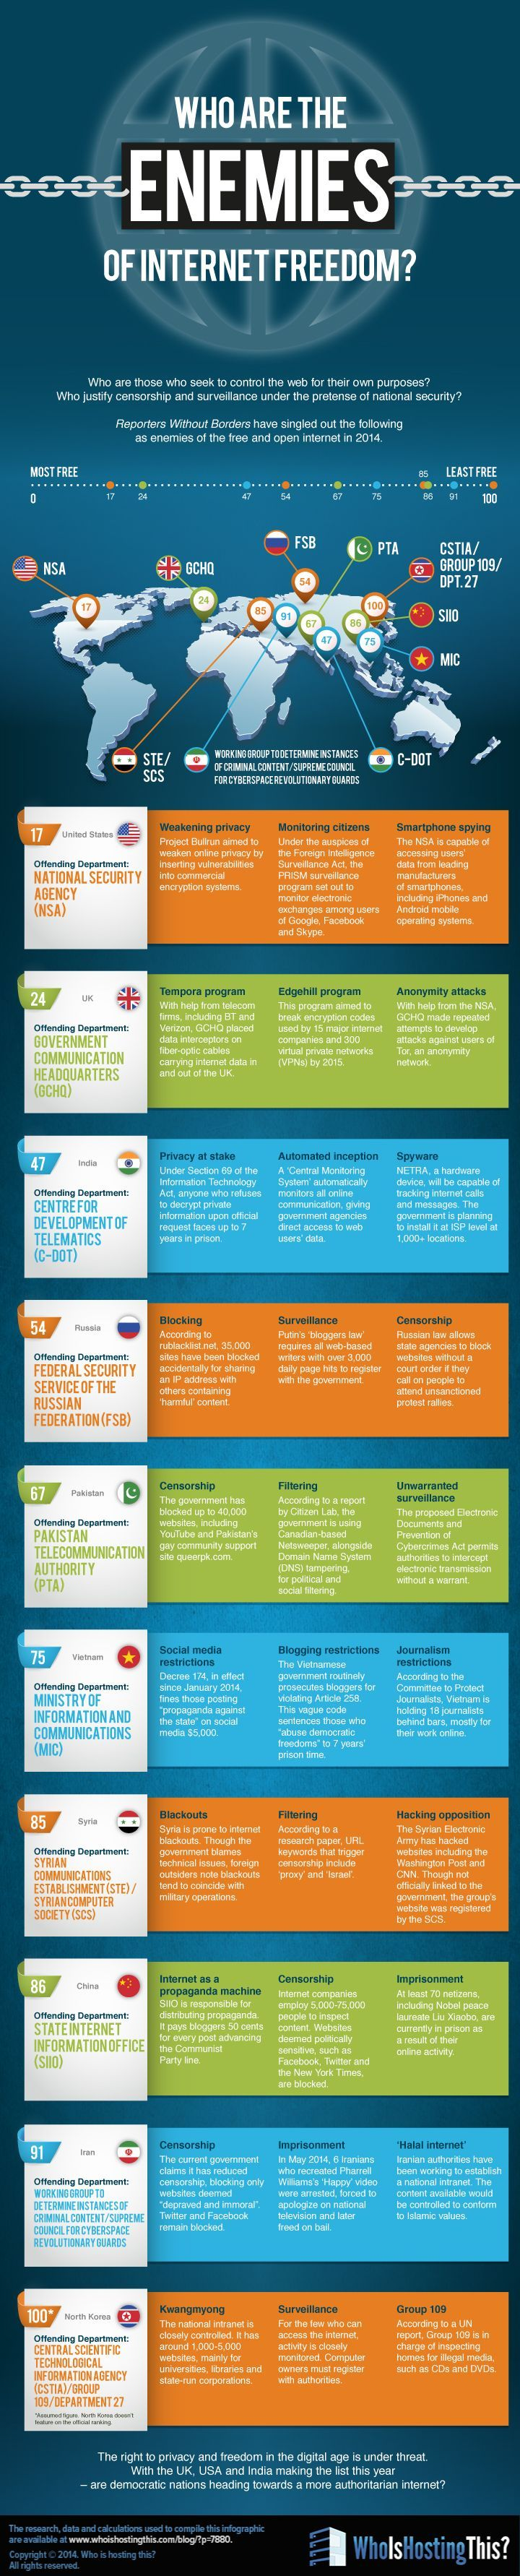 Who Are the Enemies of Internet Freedom? #infographic #Internet #Technology